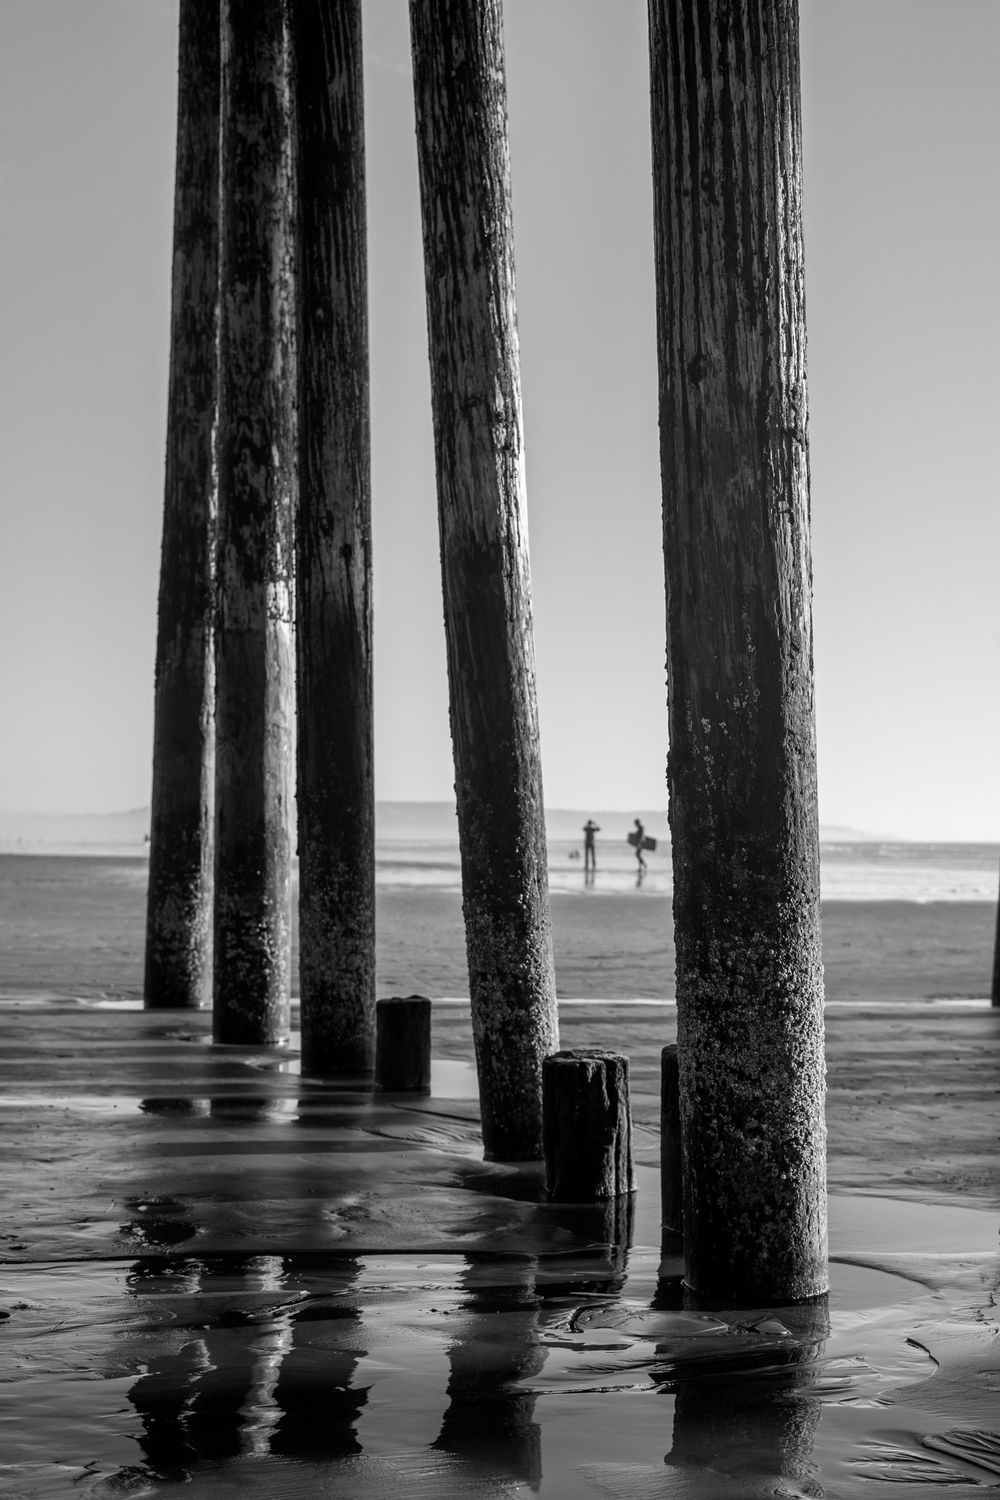 Pier review  - image 3 - student project